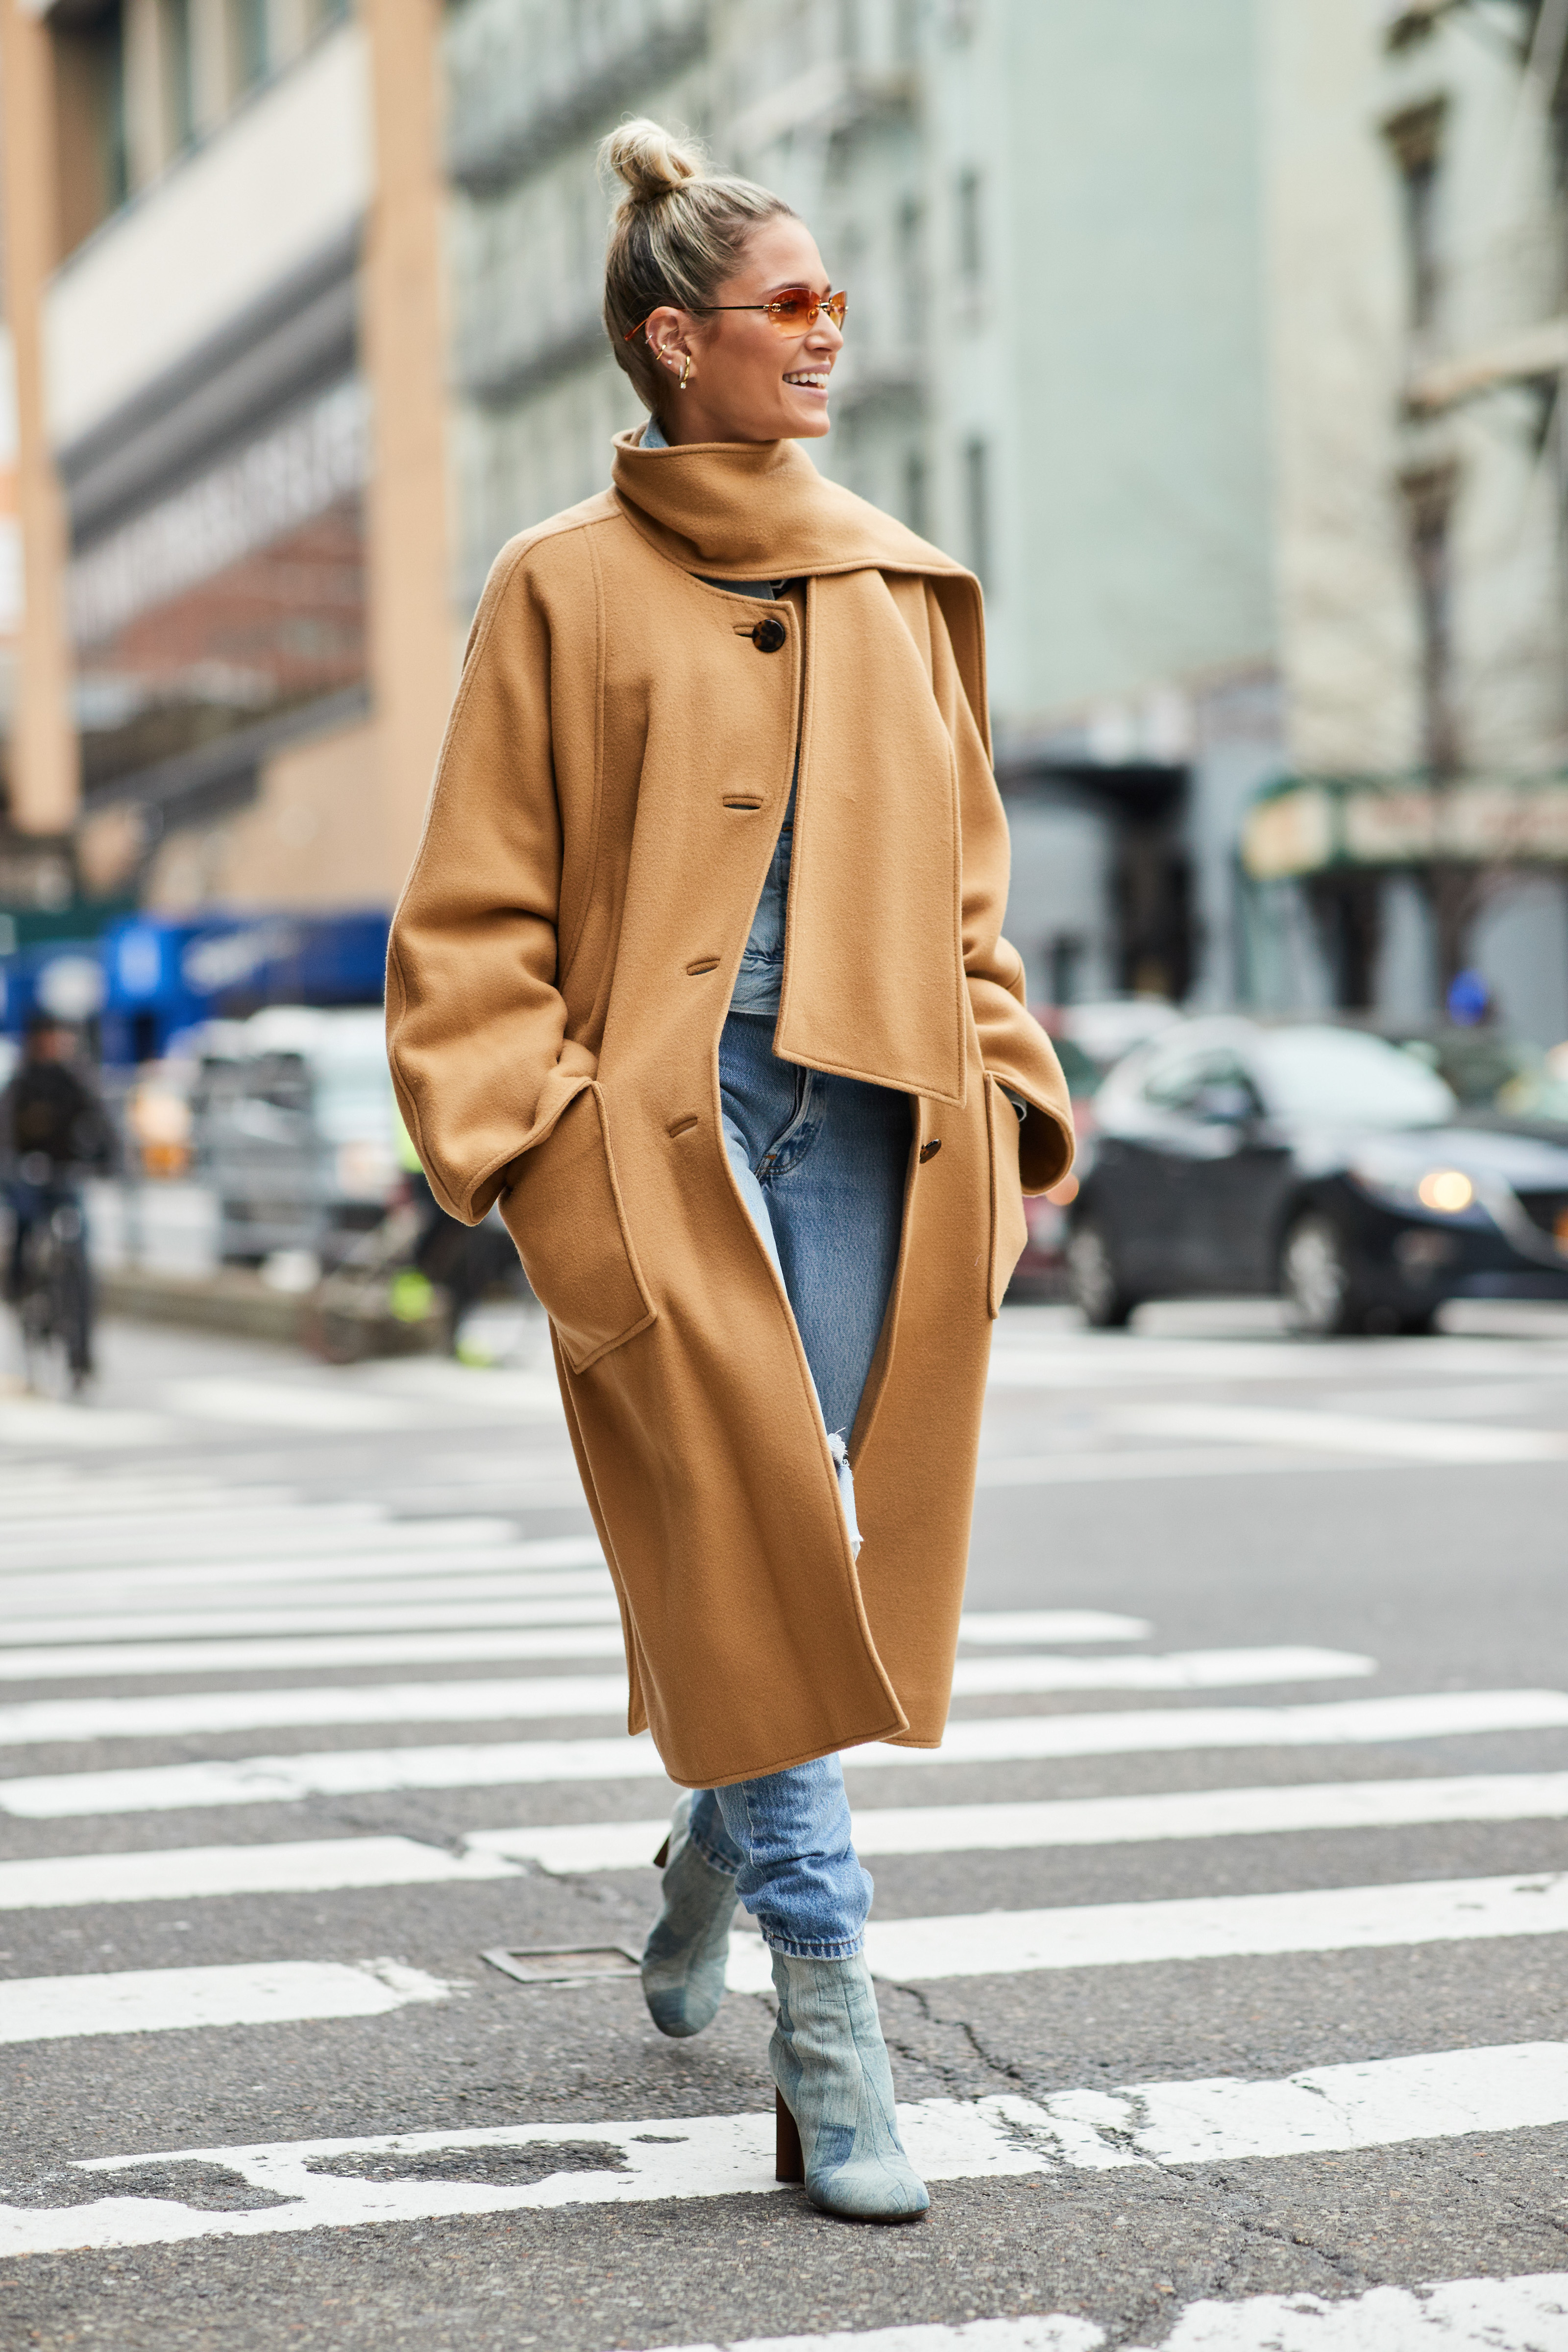 0392b4b6d6 Autumn Winter 2018 2019 part 1 - The Style Stalker - Street Style by ...